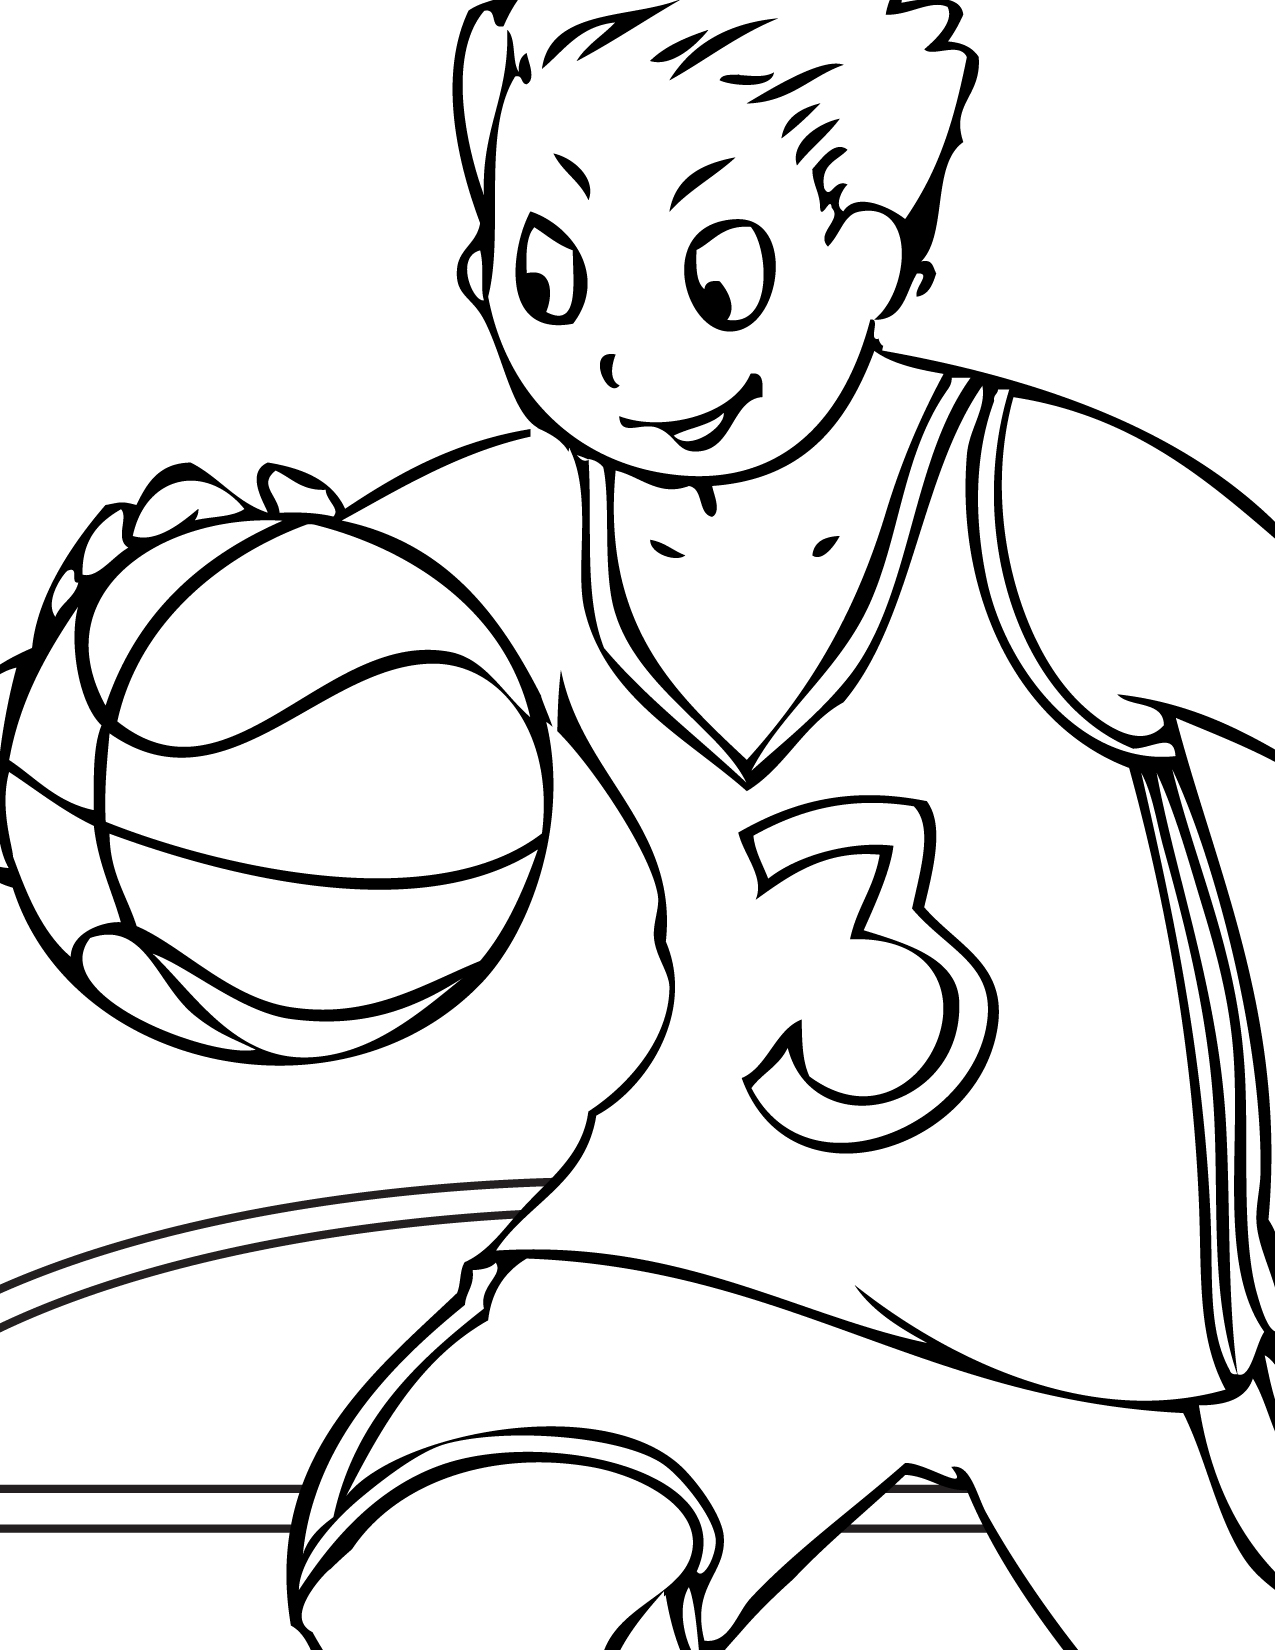 sports coloring sheets - Sports Coloring Pages